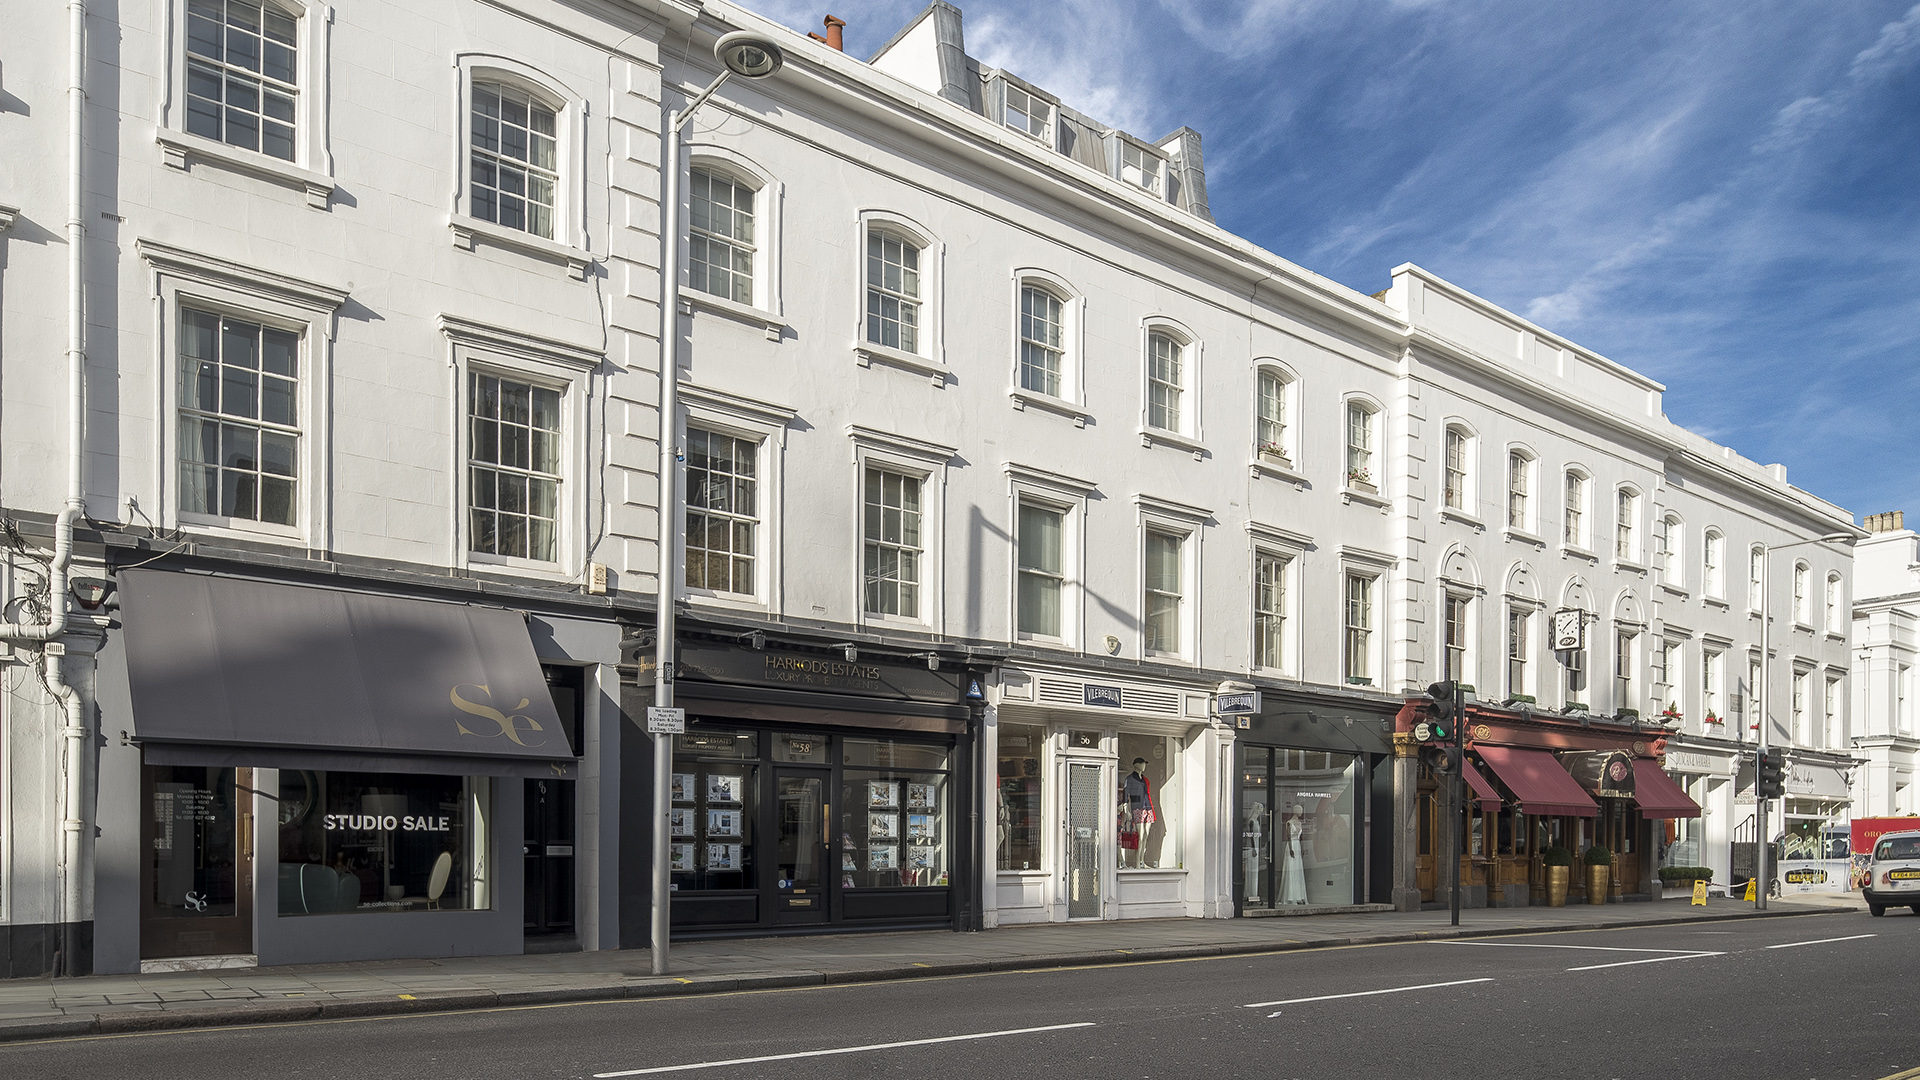 Fulham Road London photo of multiple retail store fronts